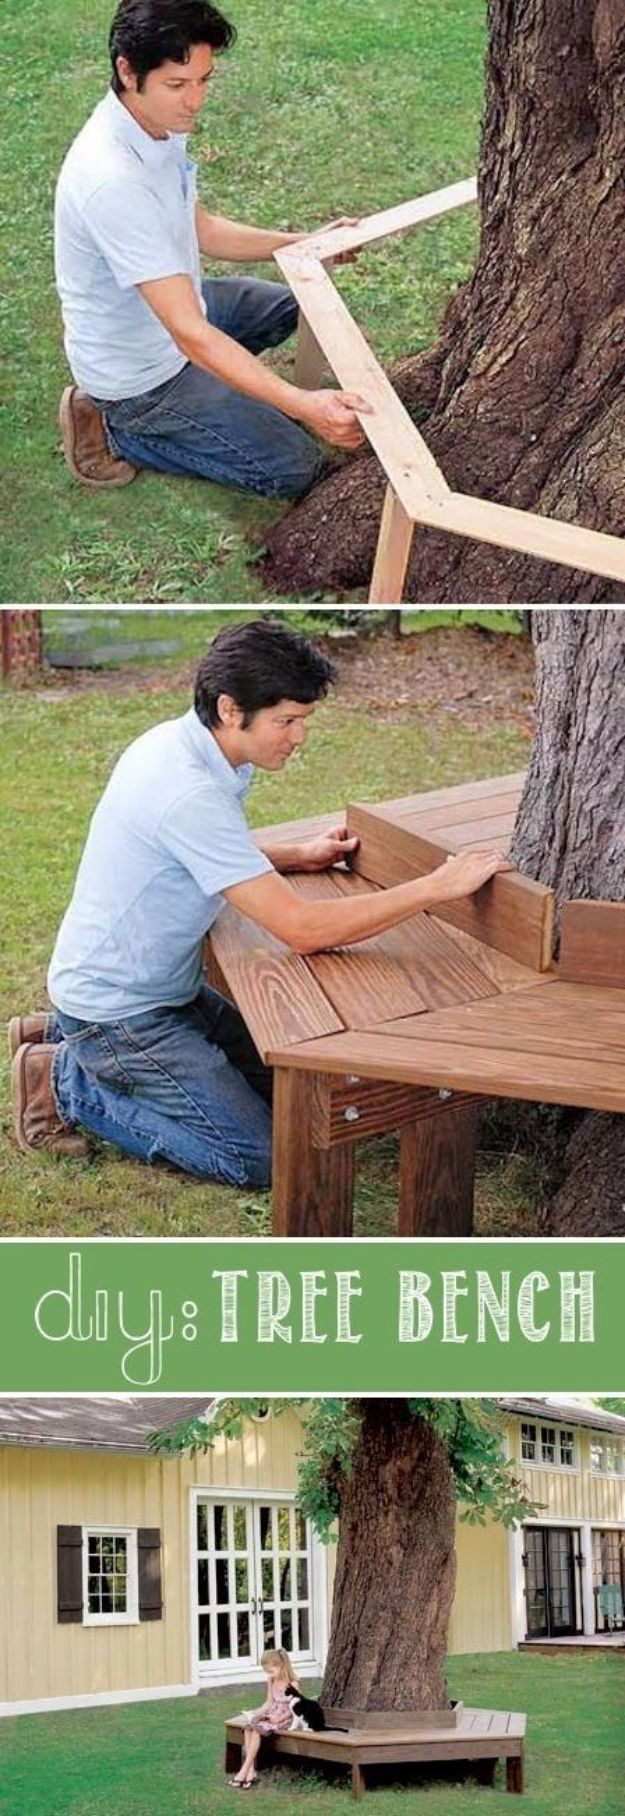 Creative Ways to Increase Curb Appeal on A Budget – Build A Tree Bench – Cheap a…